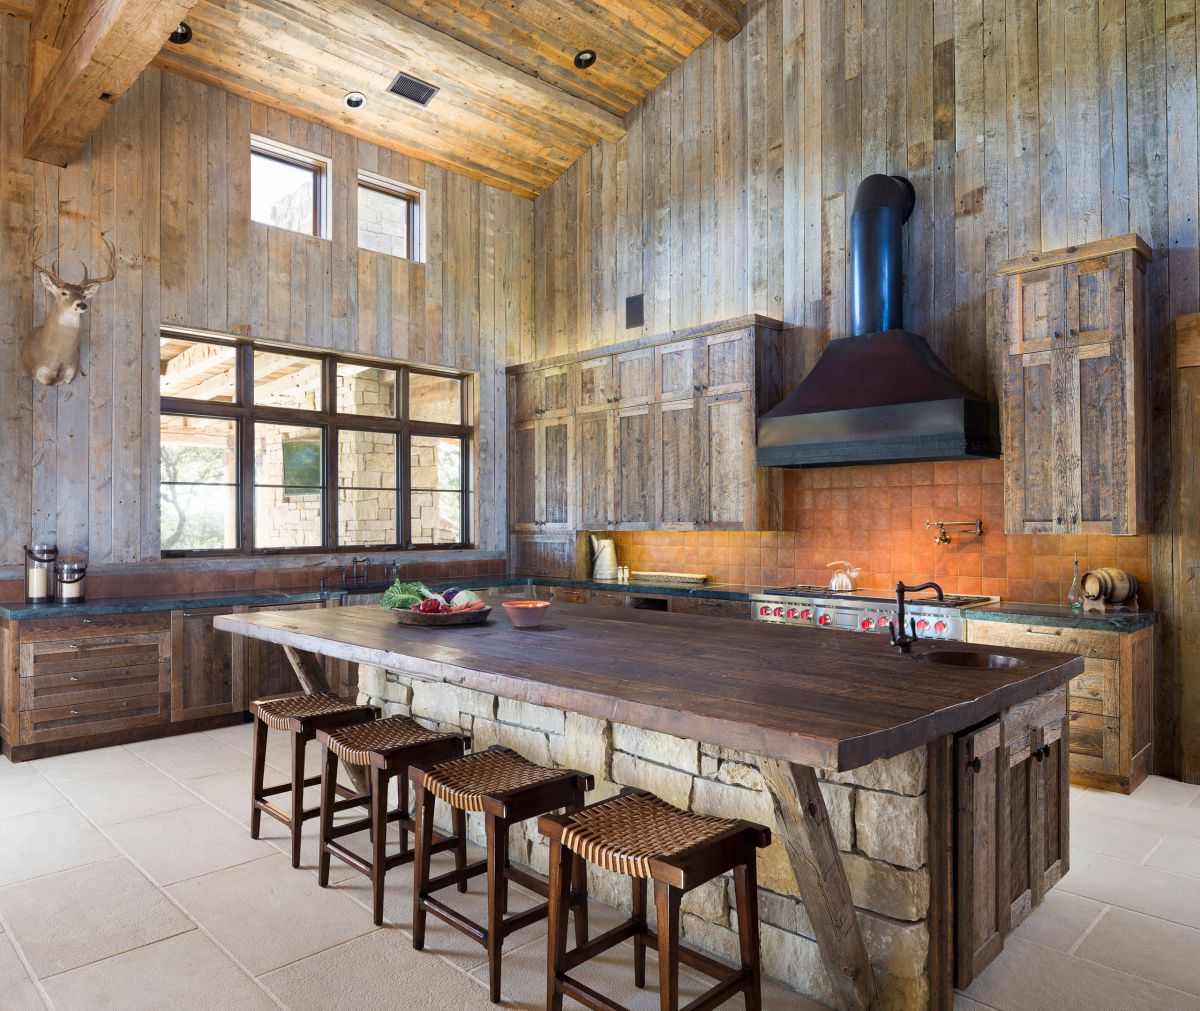 Ultra luxe rustic kitchen islands.